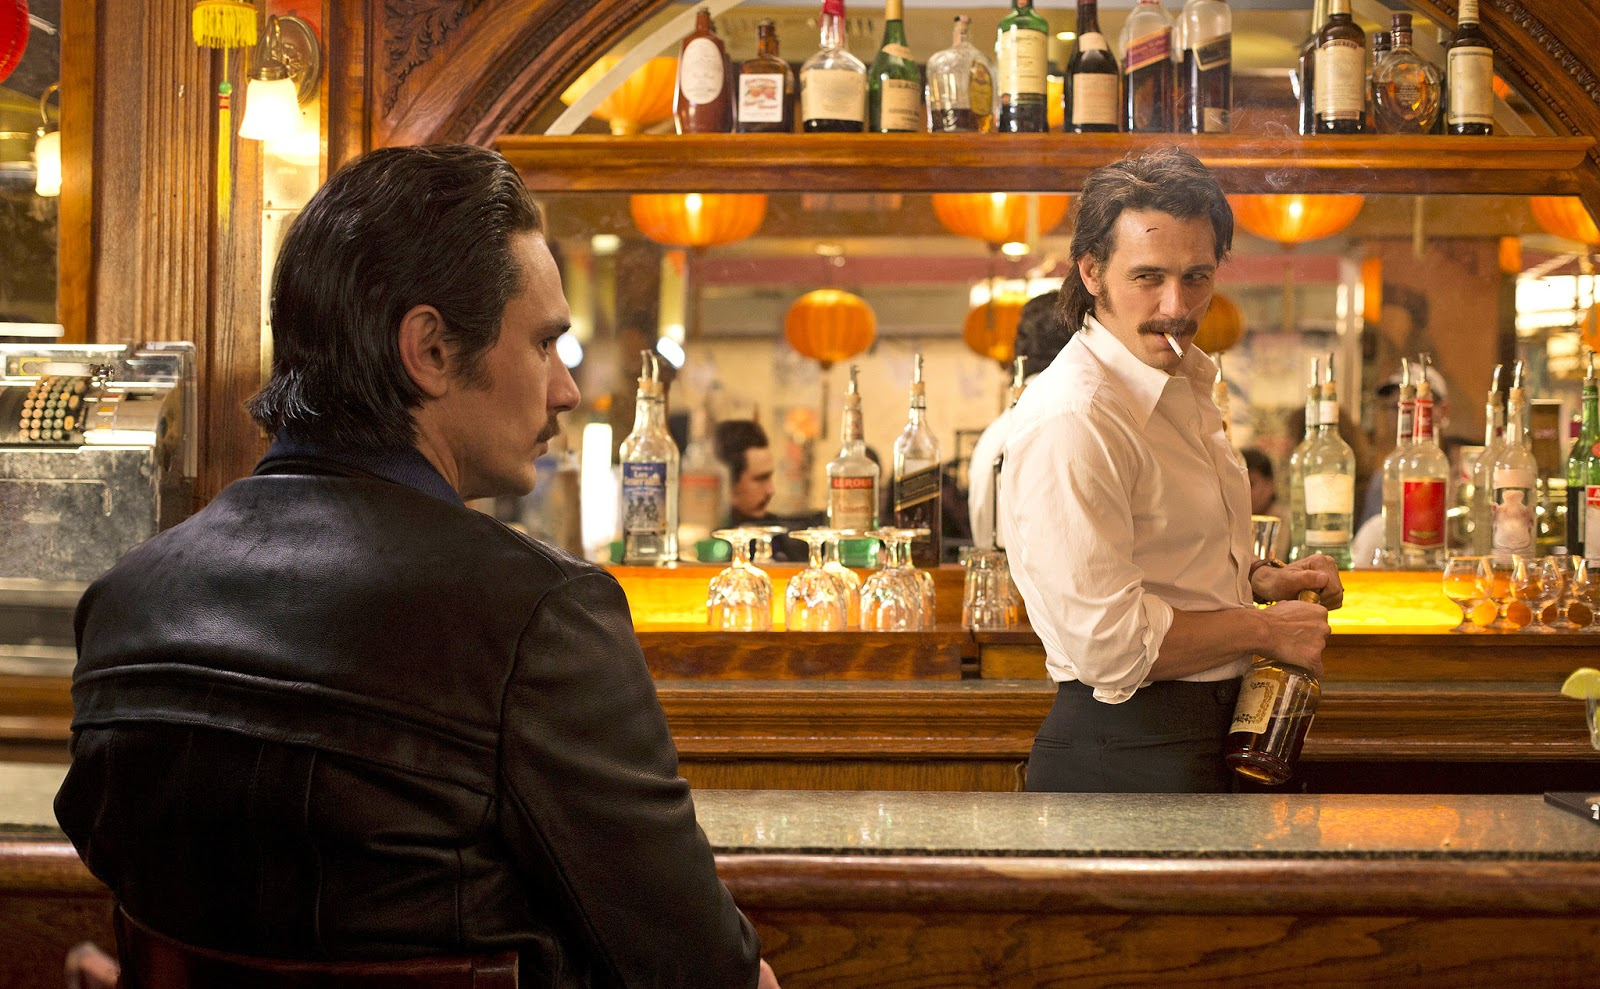 Vincent y Frankie, los gemelos interpretados por James Franco en The Deuce